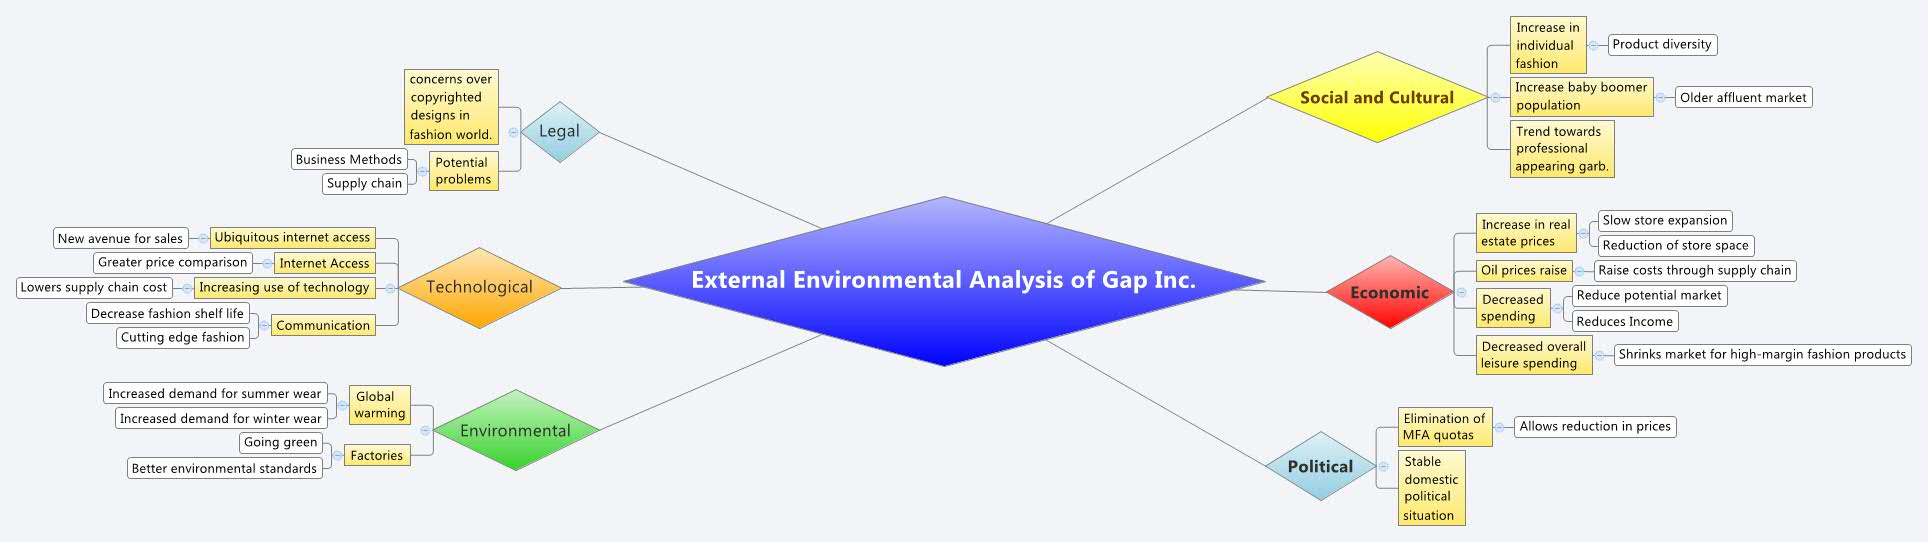 environmental analysis Environmental analysis - free download as word doc (doc / docx), pdf file (pdf), text file (txt) or read online for free.